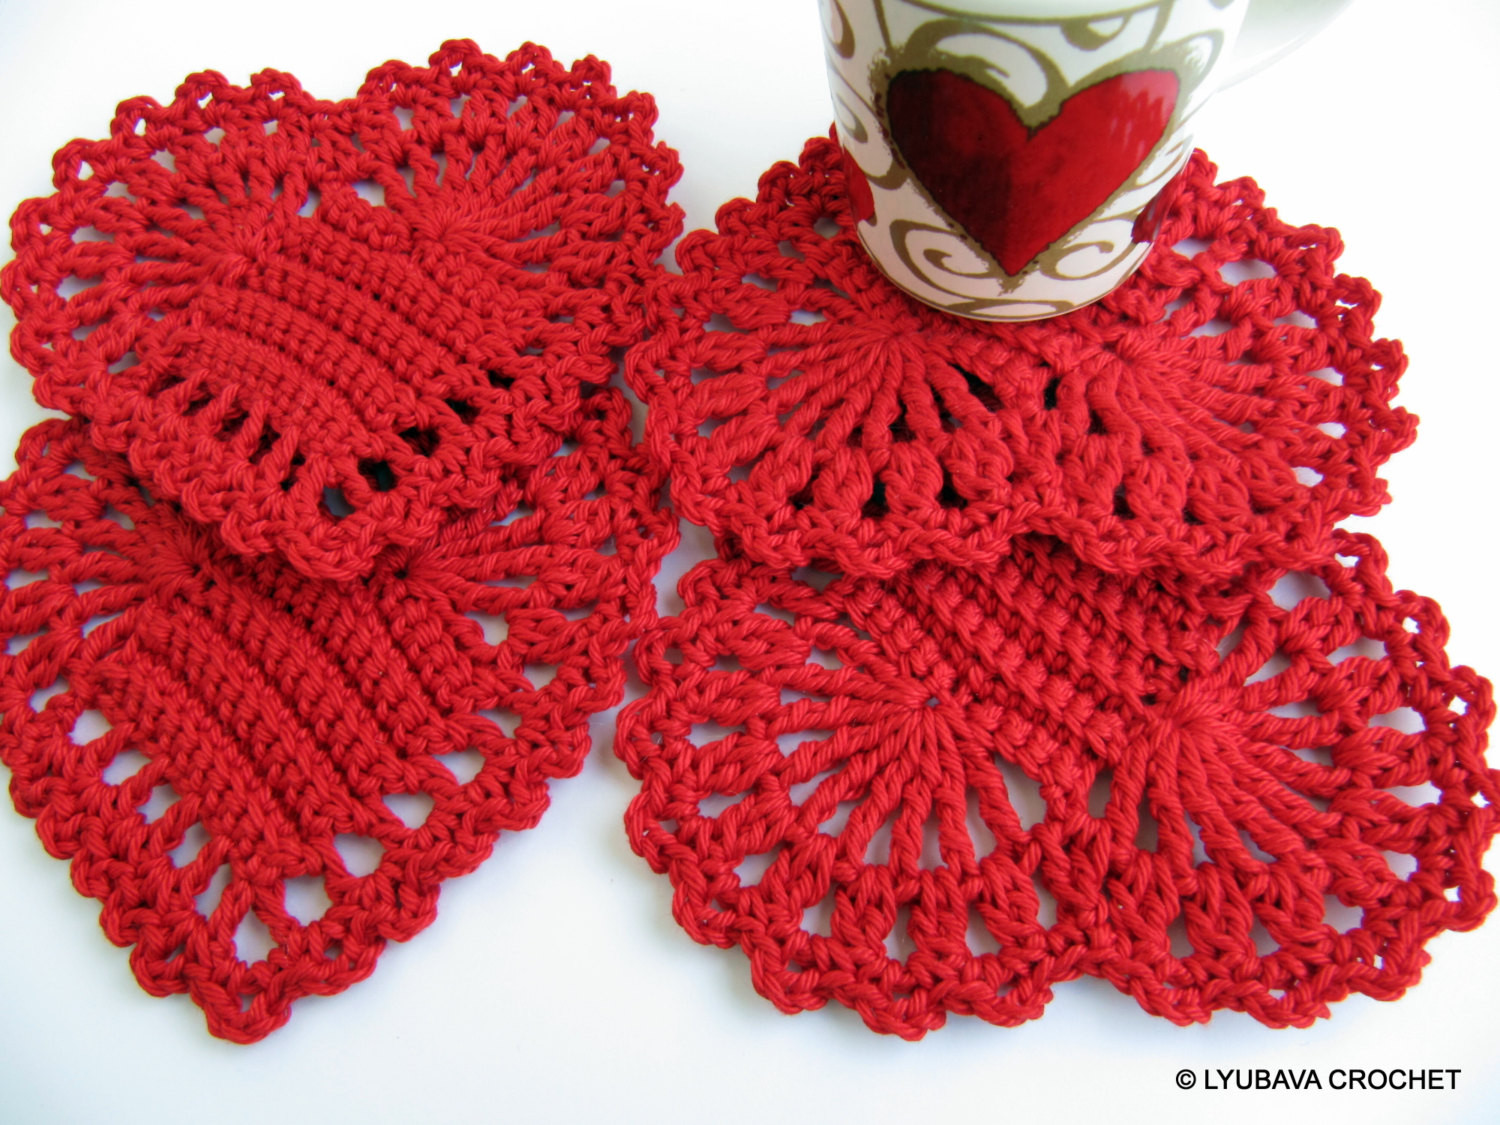 Red Heart Free Crochet Patterns New Red Heart Coasters Pattern Crochet Home Decor Pattern Of Adorable 43 Images Red Heart Free Crochet Patterns